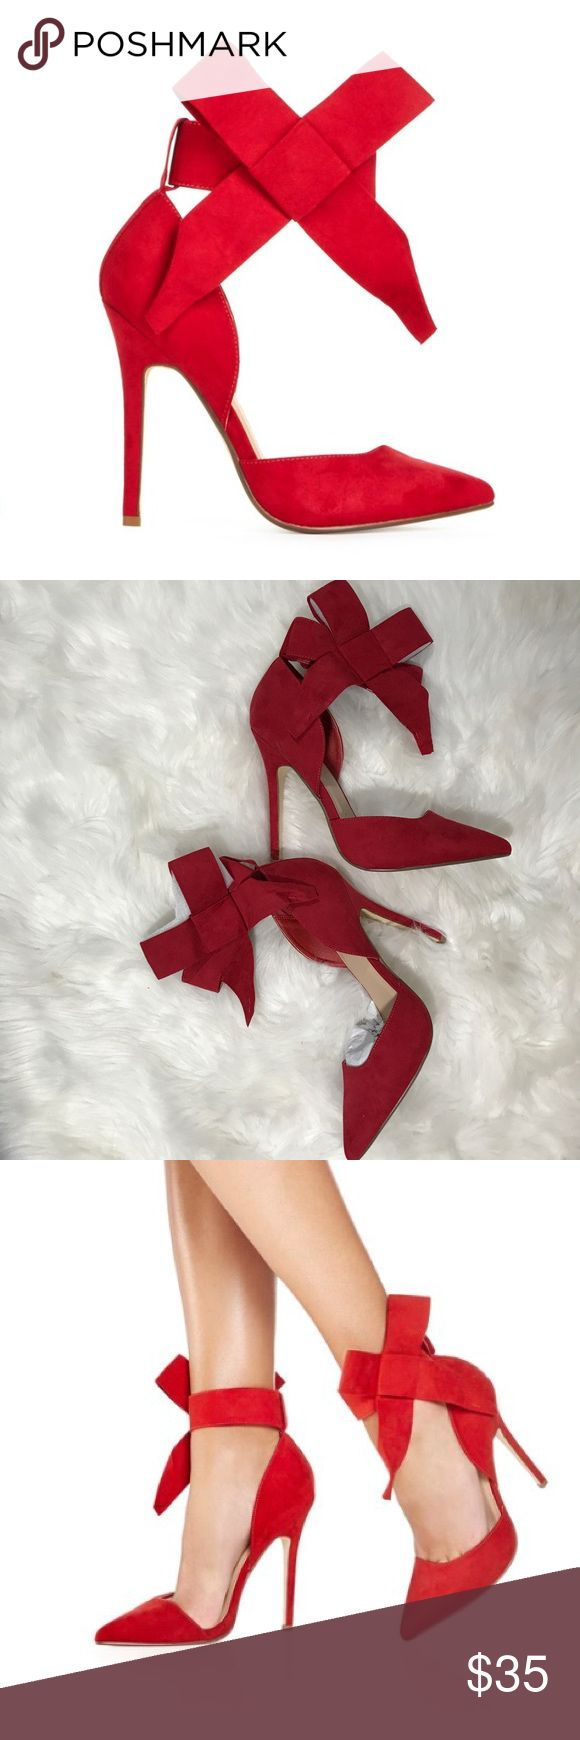 JustFab Hadley Bow Heels NWT size 10 NWT never worn adorable bow heels from JustFab. Didn't return in time, my loss is your gain! Have original box. Please note the color is a much deeper red than shown in stock photos, please see my flat shot of the actual shoes for better representation of color.   From website  4.5⭐️ out of 5!   Make it an haute holiday in Hadley. She's an irresistible d'Orsay pointed toe pump with a gore and Velcro strap featuring a big bow at the ankle.  Fit: True to…